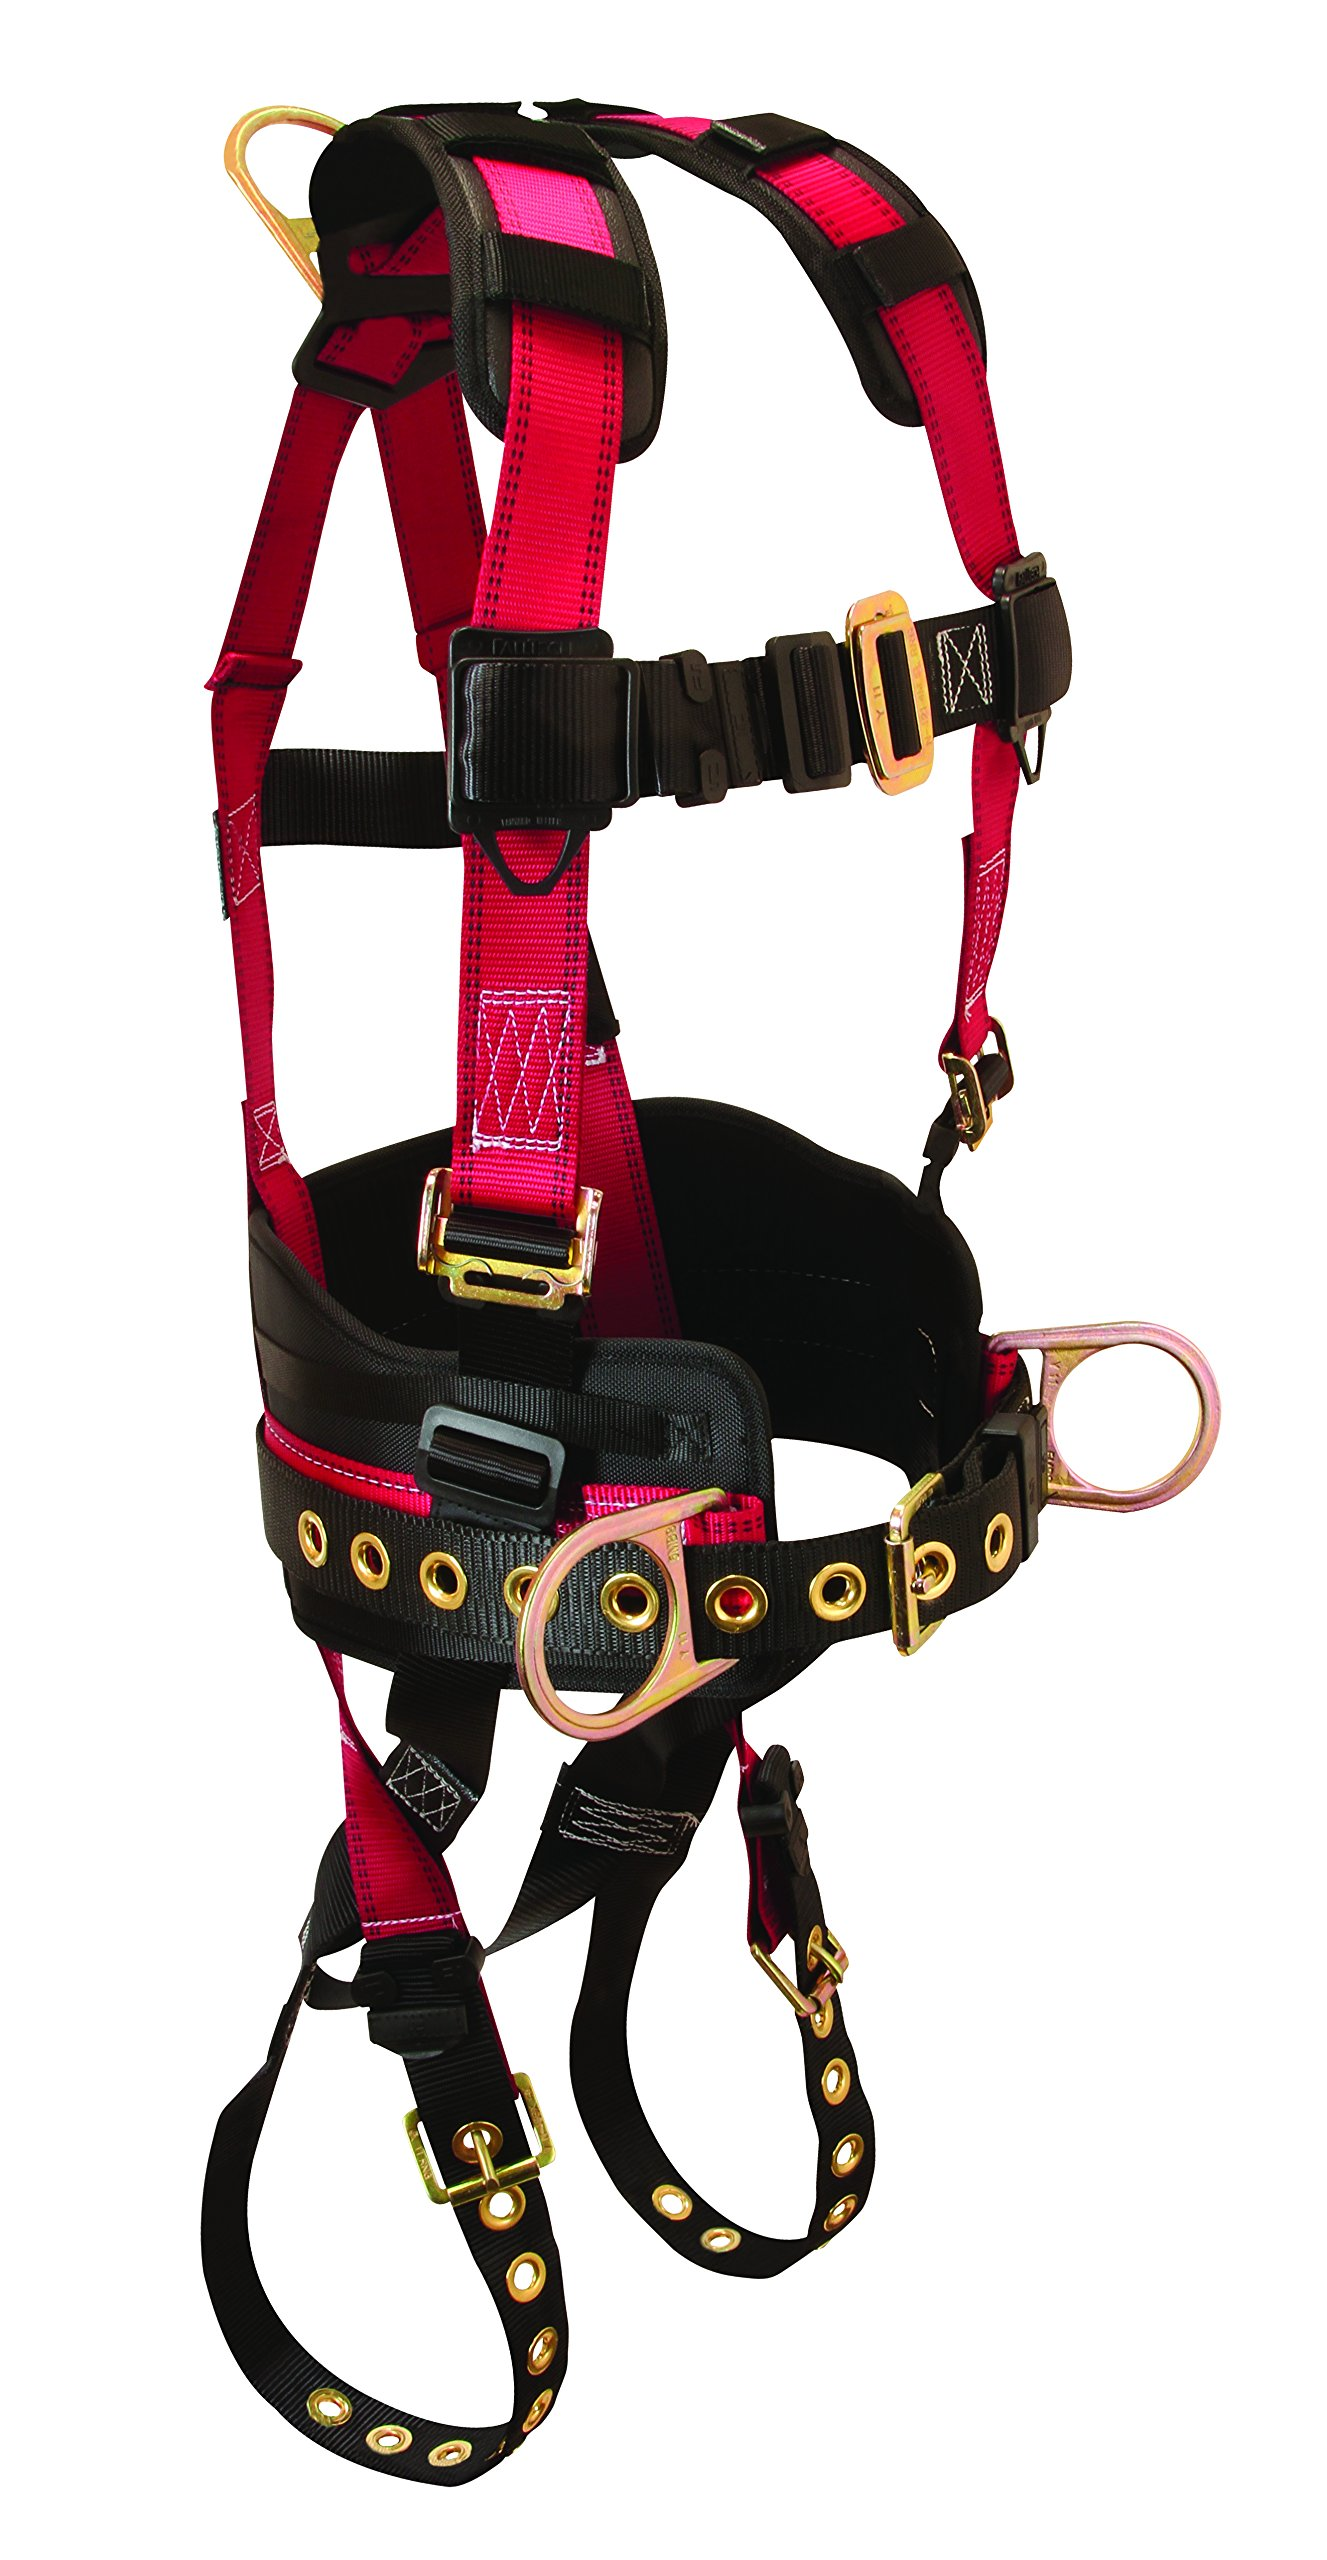 FallTech 7078LX Foreman with Full Body Harness with 3 D-Rings and Tongue Buckle Leg Straps, Large/Extra Large